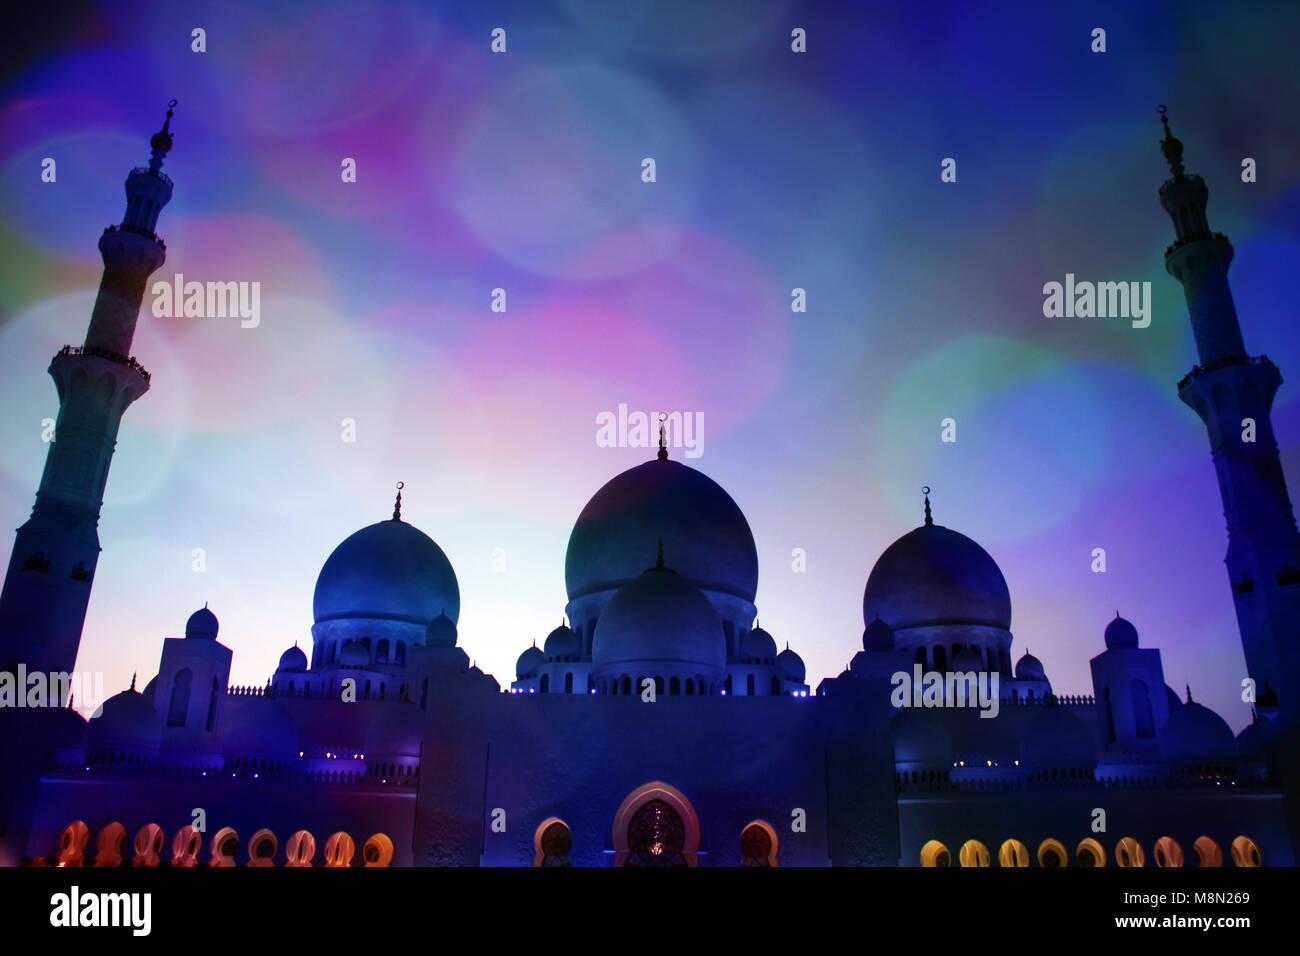 A view of the grandmosque through a thin mesh of colorful light sequins. - Stock Image